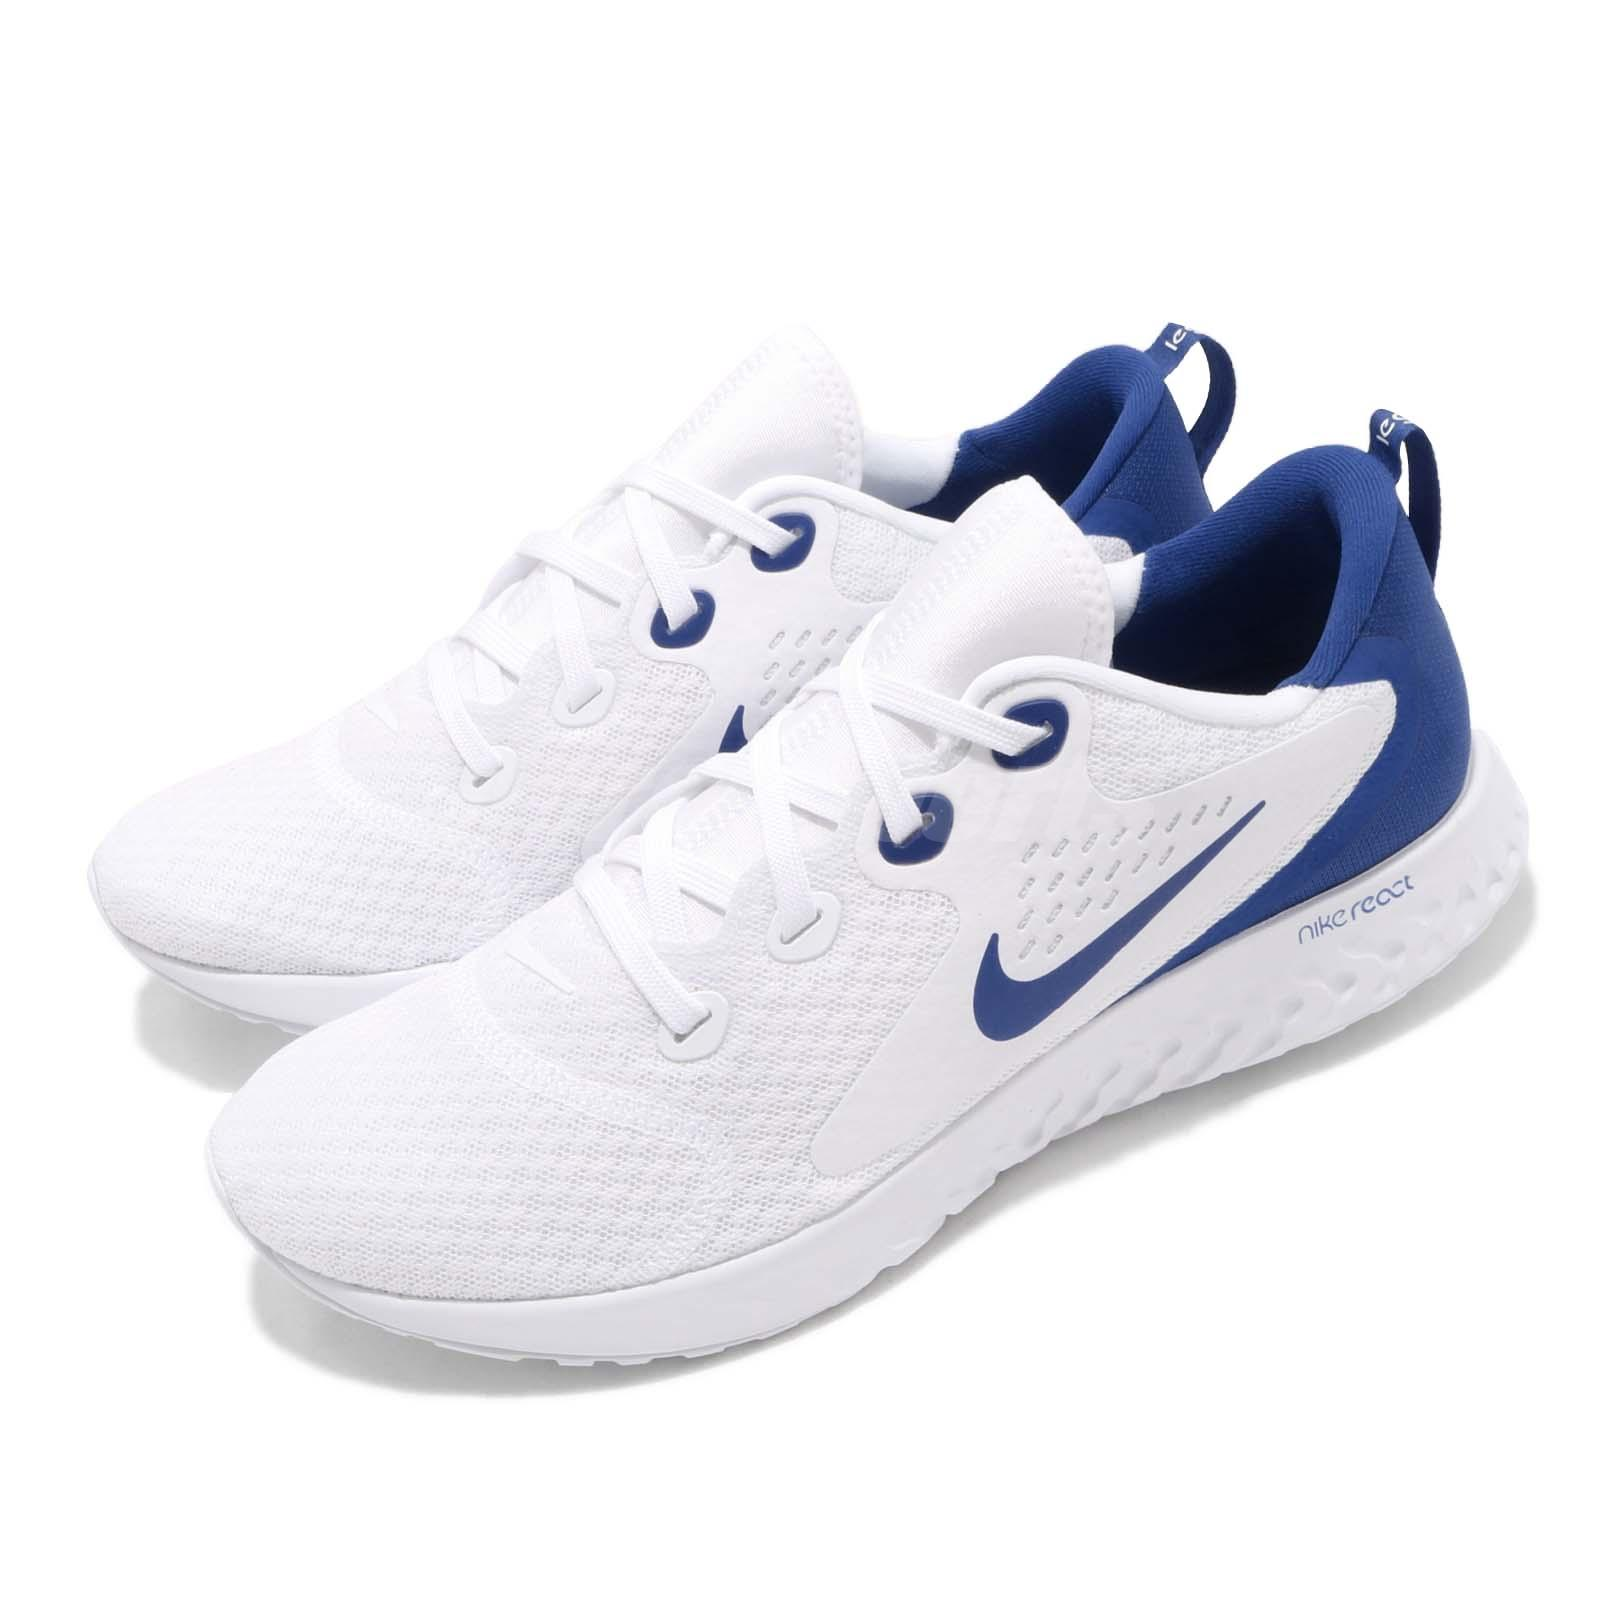 208e03150956 Details about Nike Legend React White Game Royal Blue Men Running Shoes  Sneakers AA1625-101